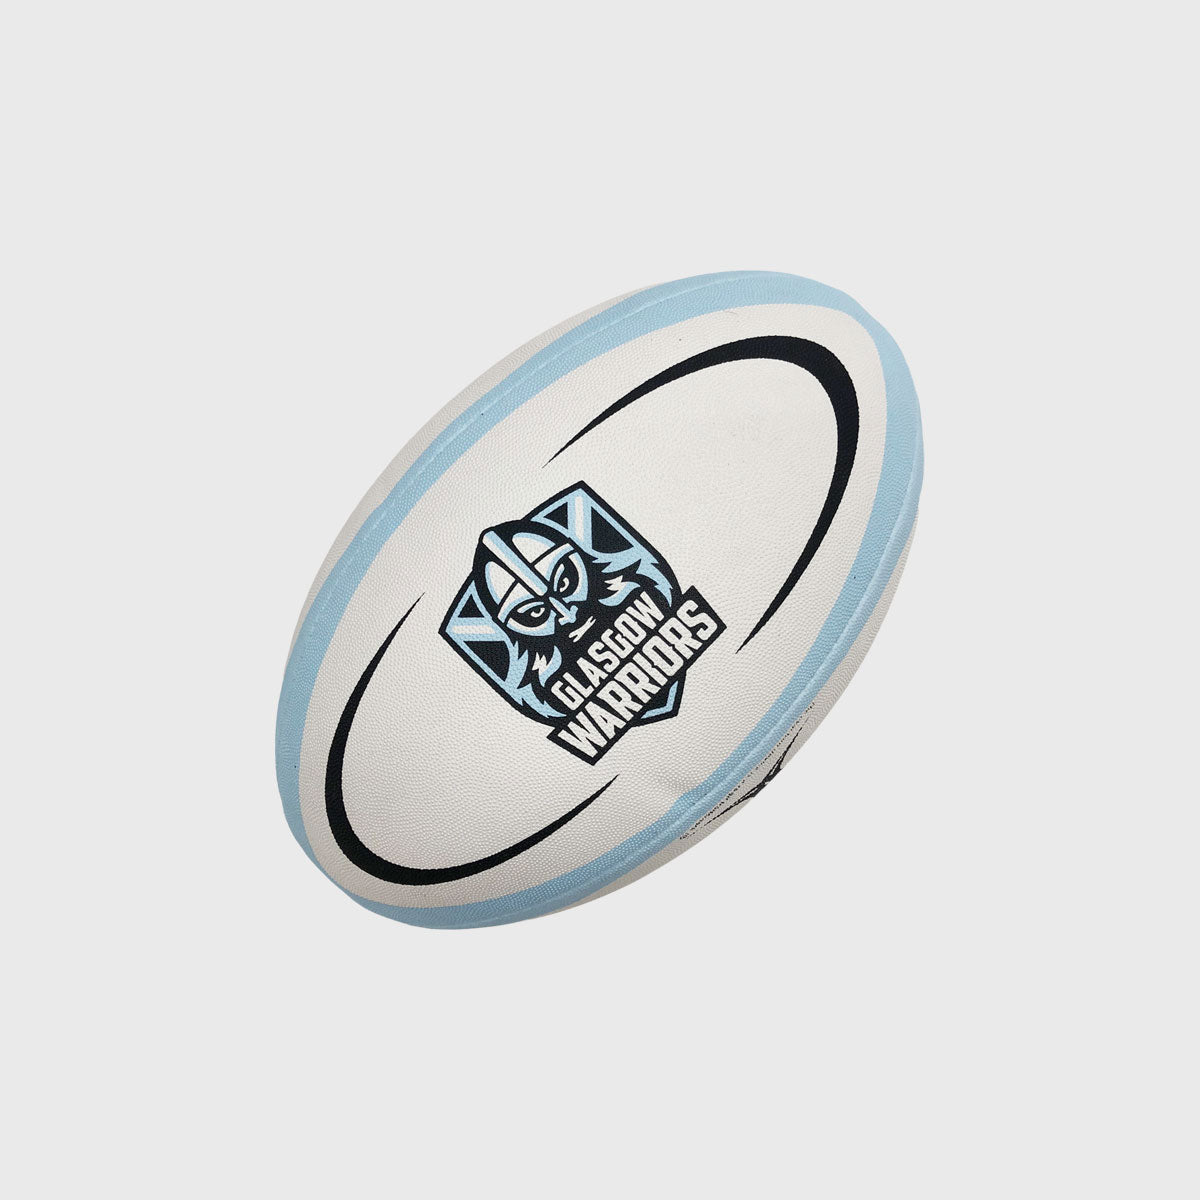 Glasgow Warriors Replica Mini Rugby Ball 2019/20 - First XV rugbystuff.com